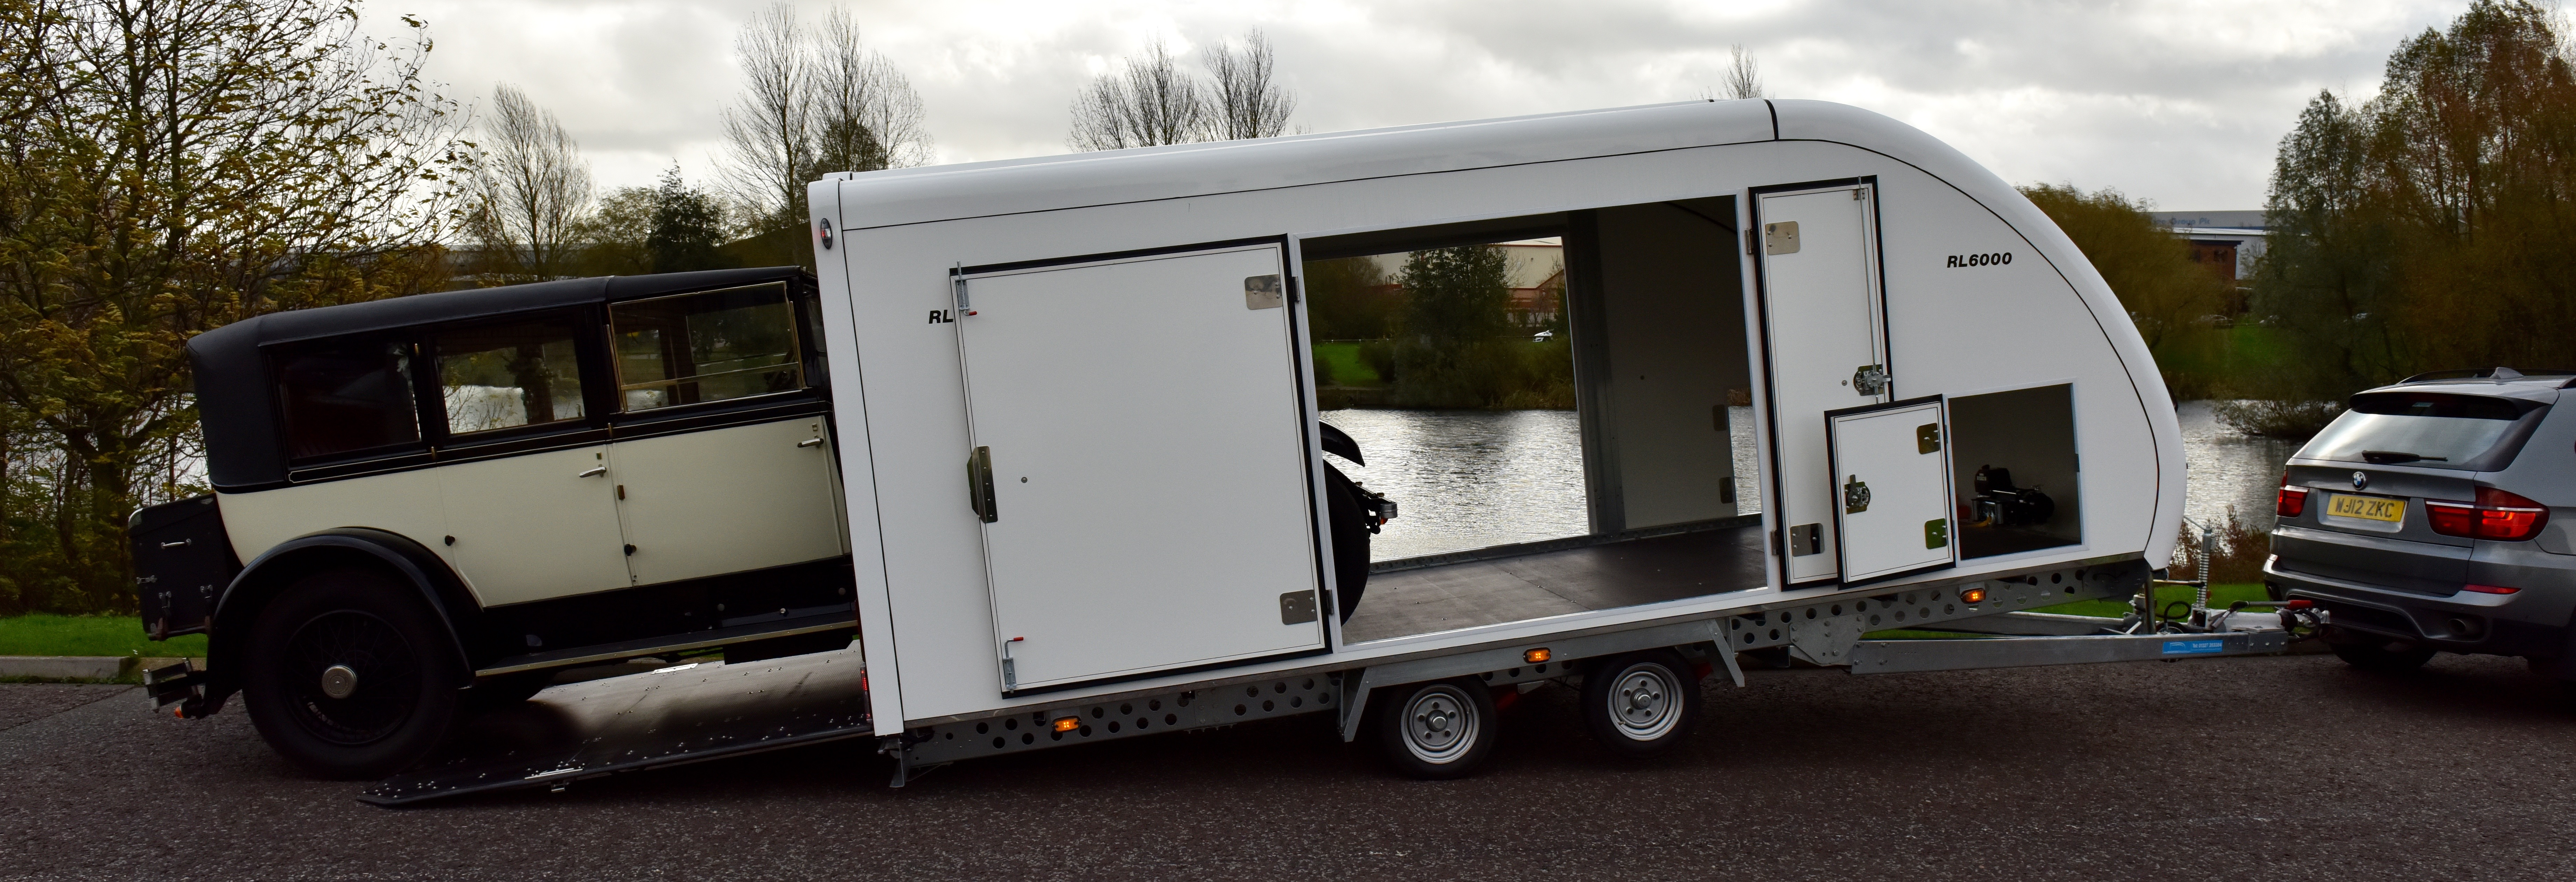 Woodford Trailers  - 125 - Copy